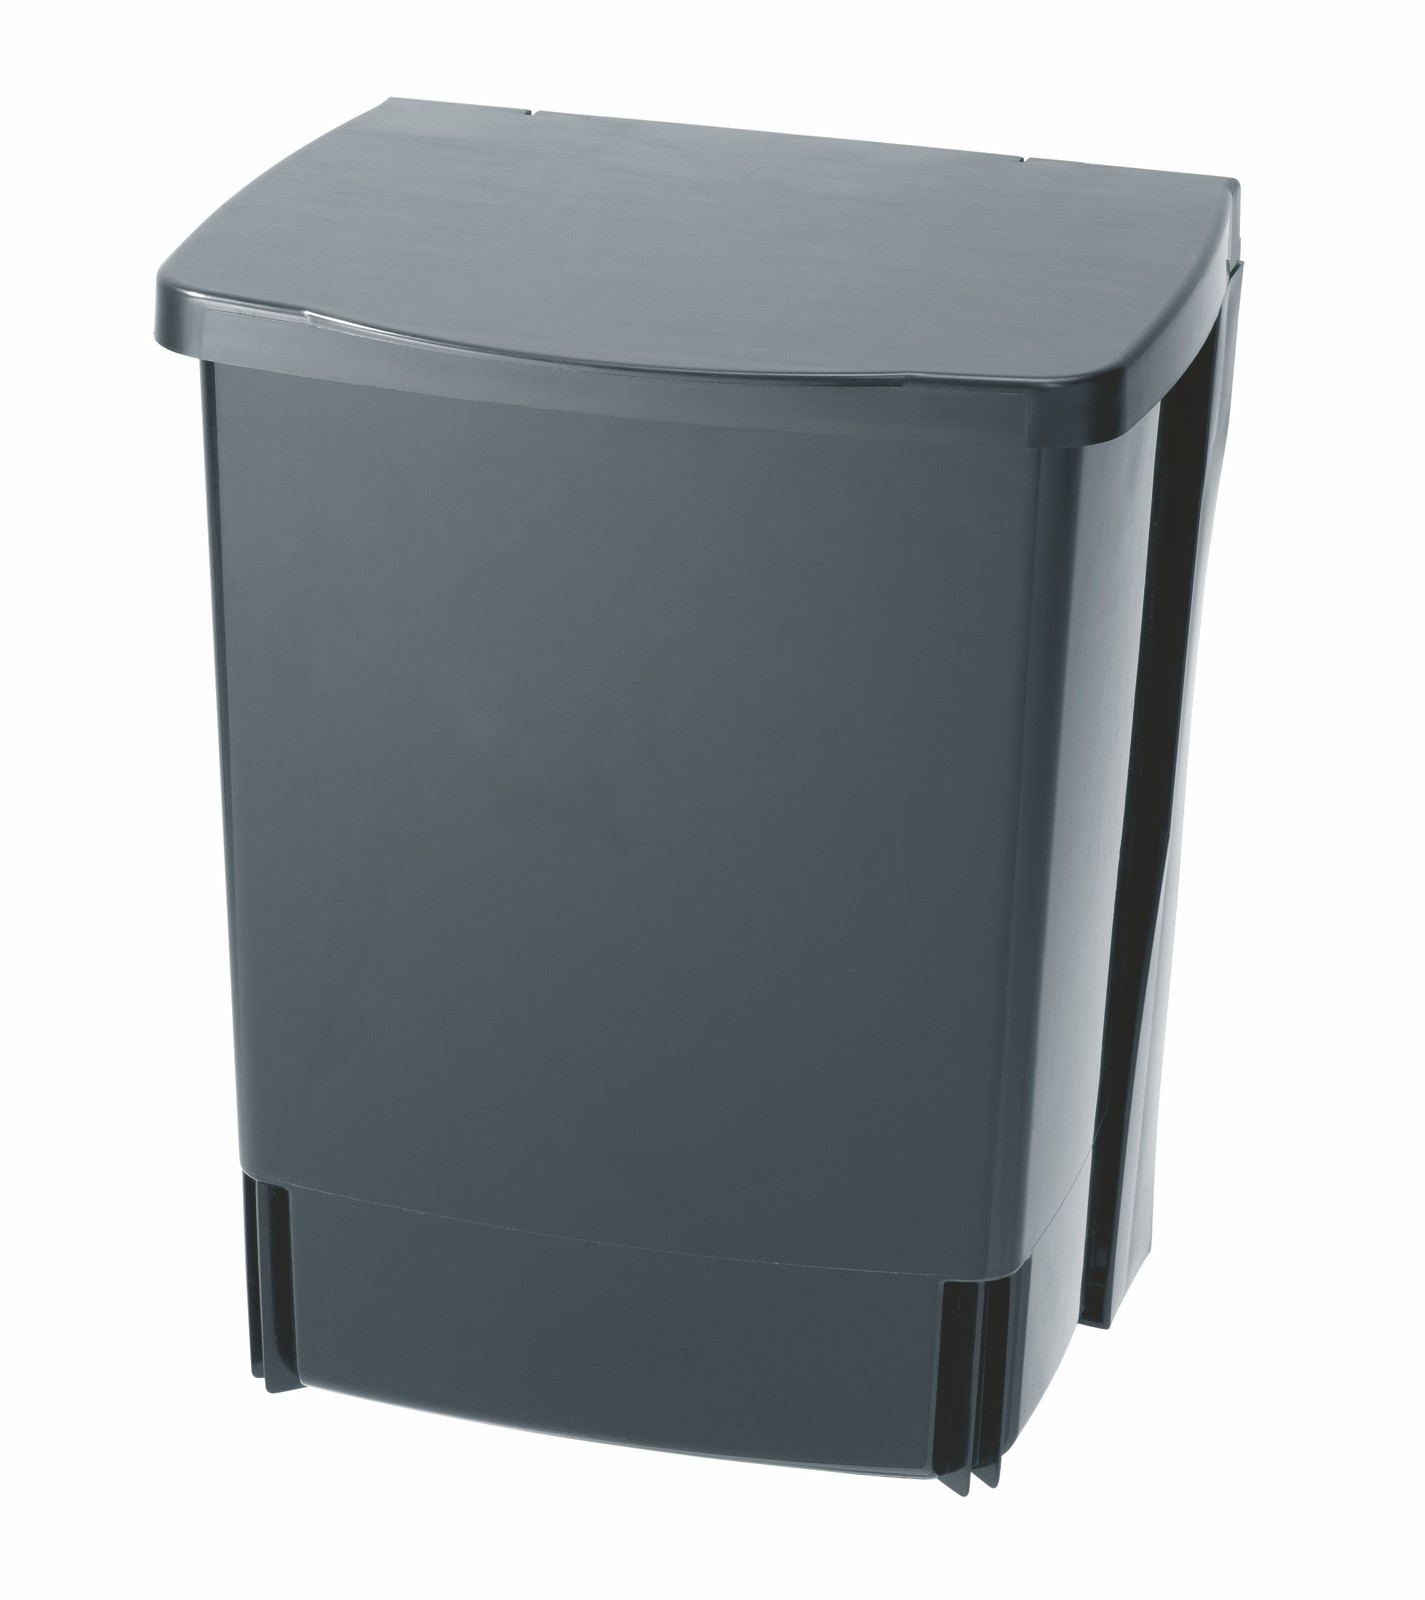 Jäteastia Brabantia Built-in Bin 10 L Black